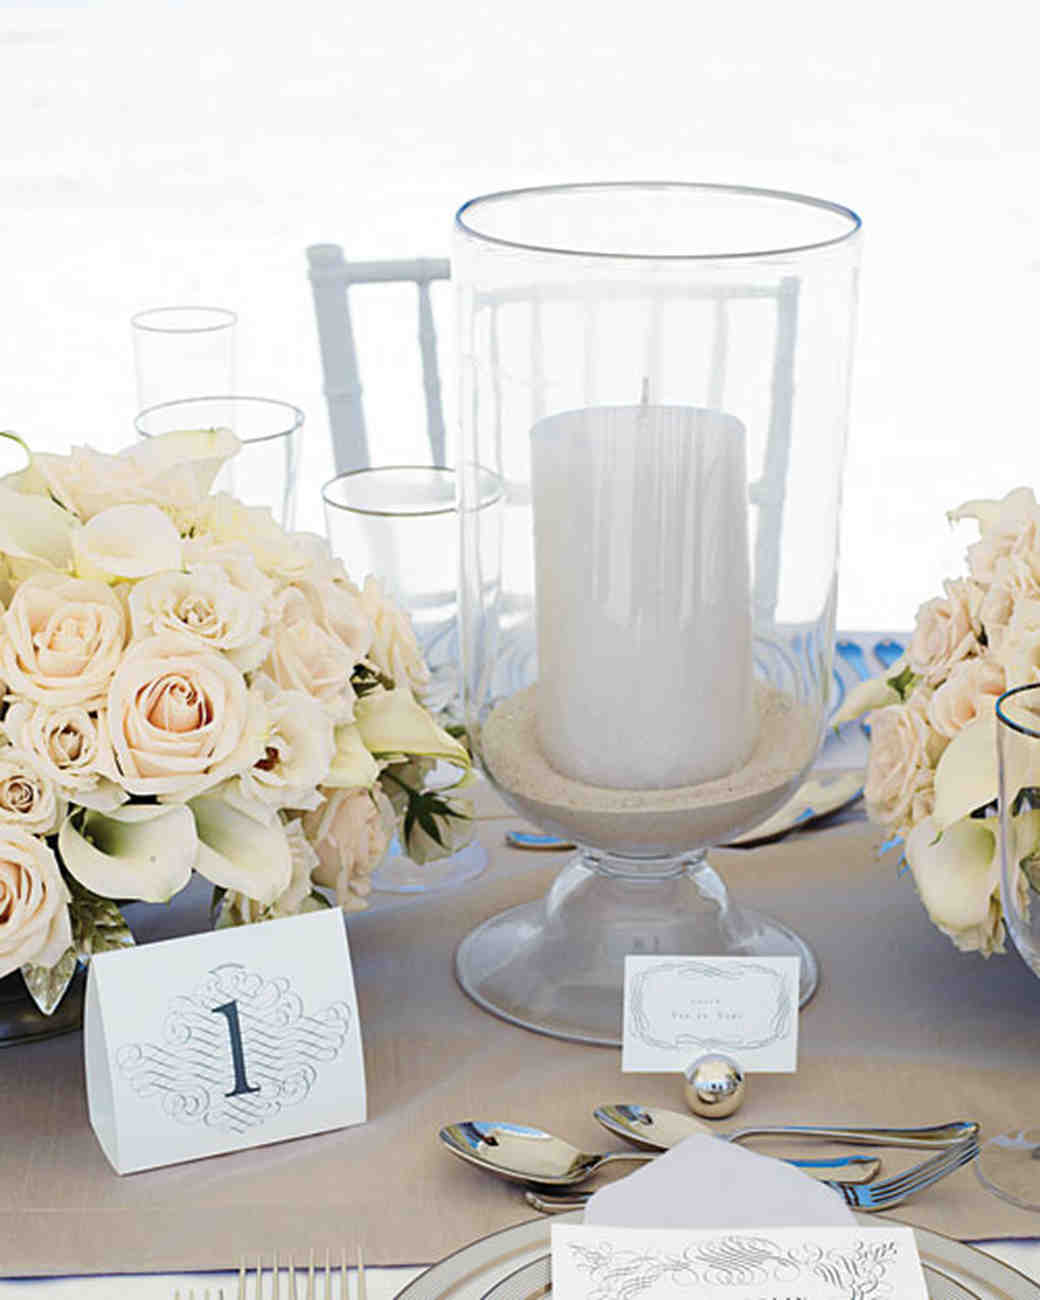 Wedding Table Decorations: Beach Wedding Centerpieces